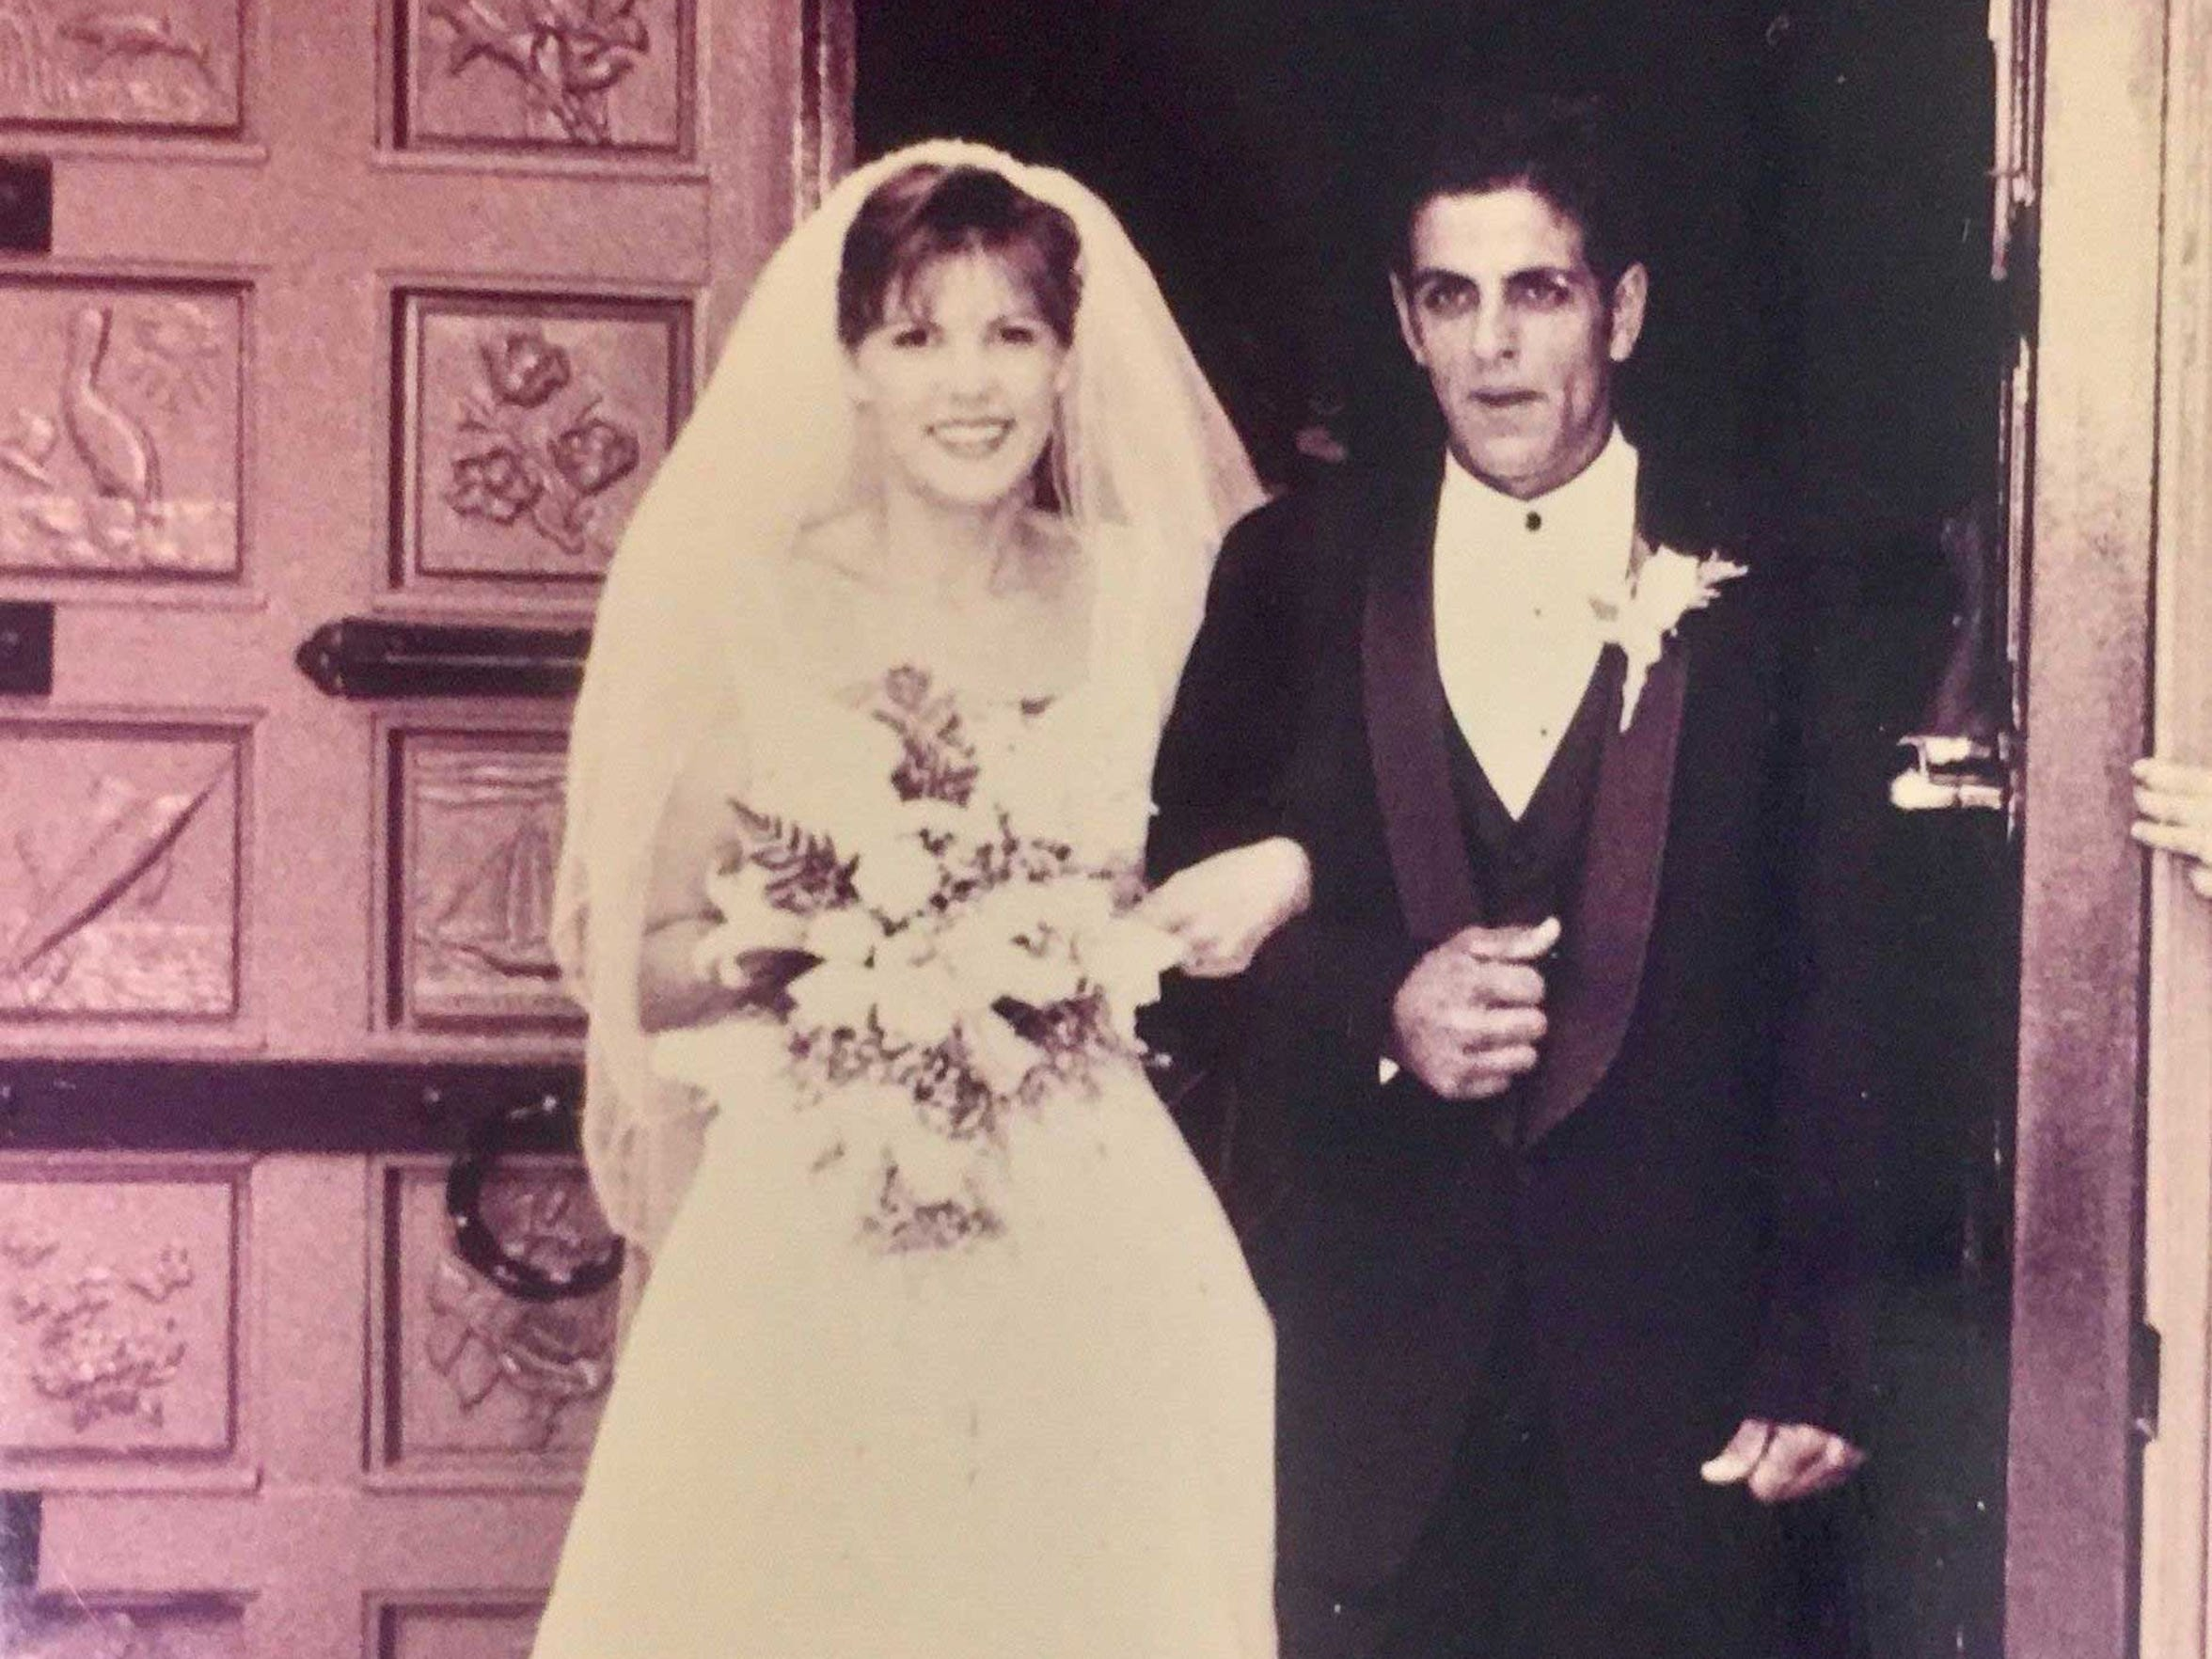 Shelly and Rudy Blanco.